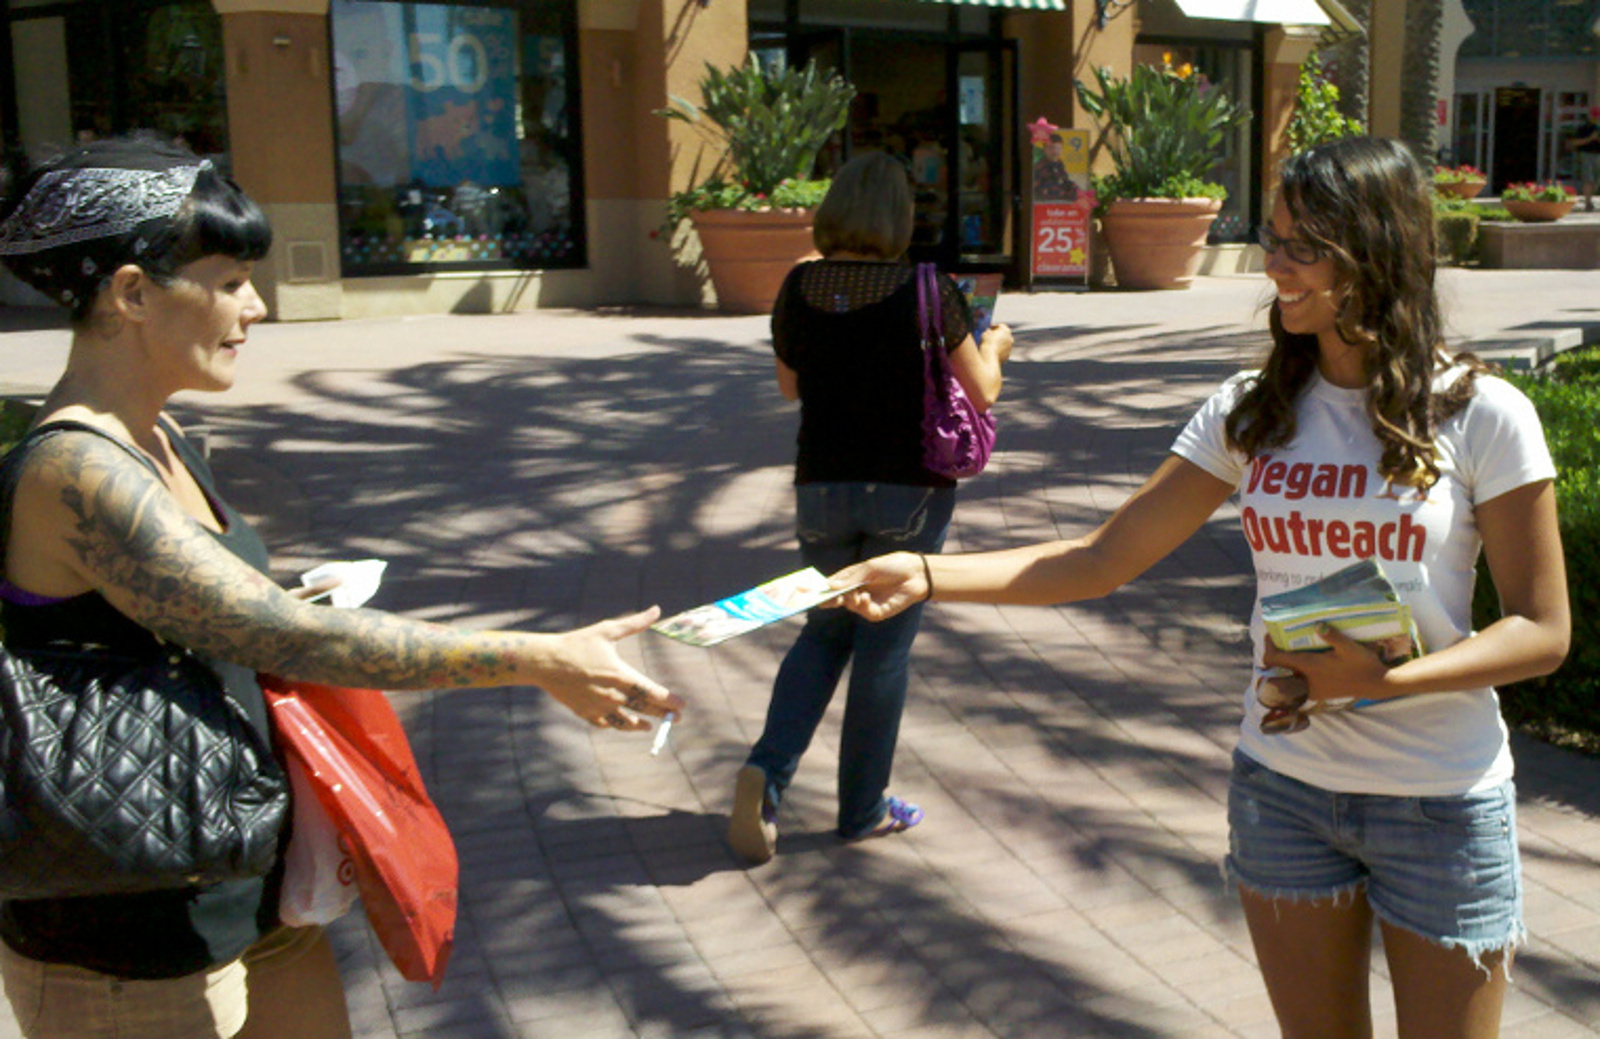 Why I Began a Vegan Outreach Advocate